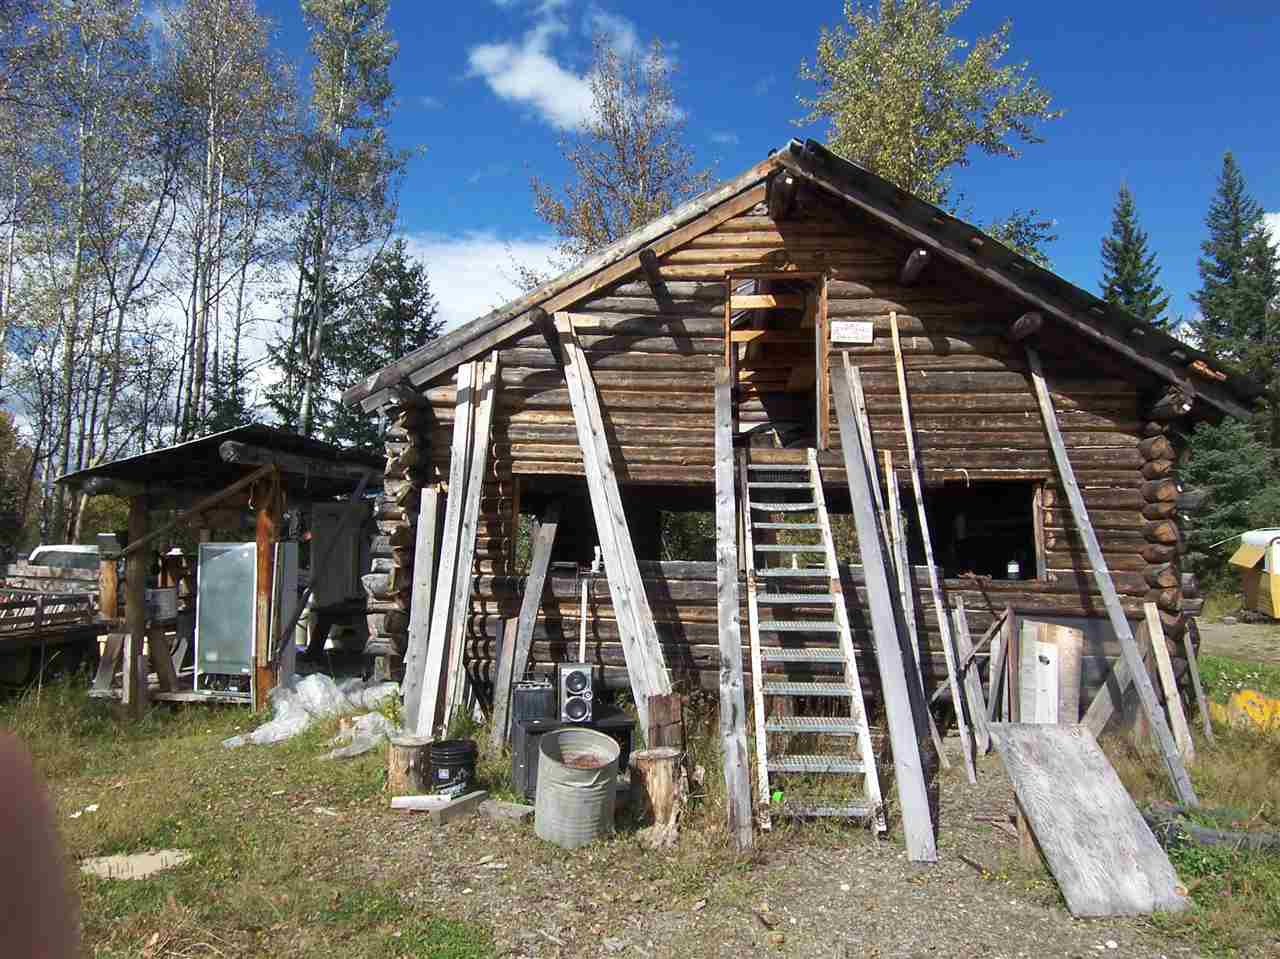 Photo 5: Photos: 4682 BARKERVILLE Highway in Quesnel: Quesnel - Rural North Land for sale (Quesnel (Zone 28))  : MLS®# R2105293